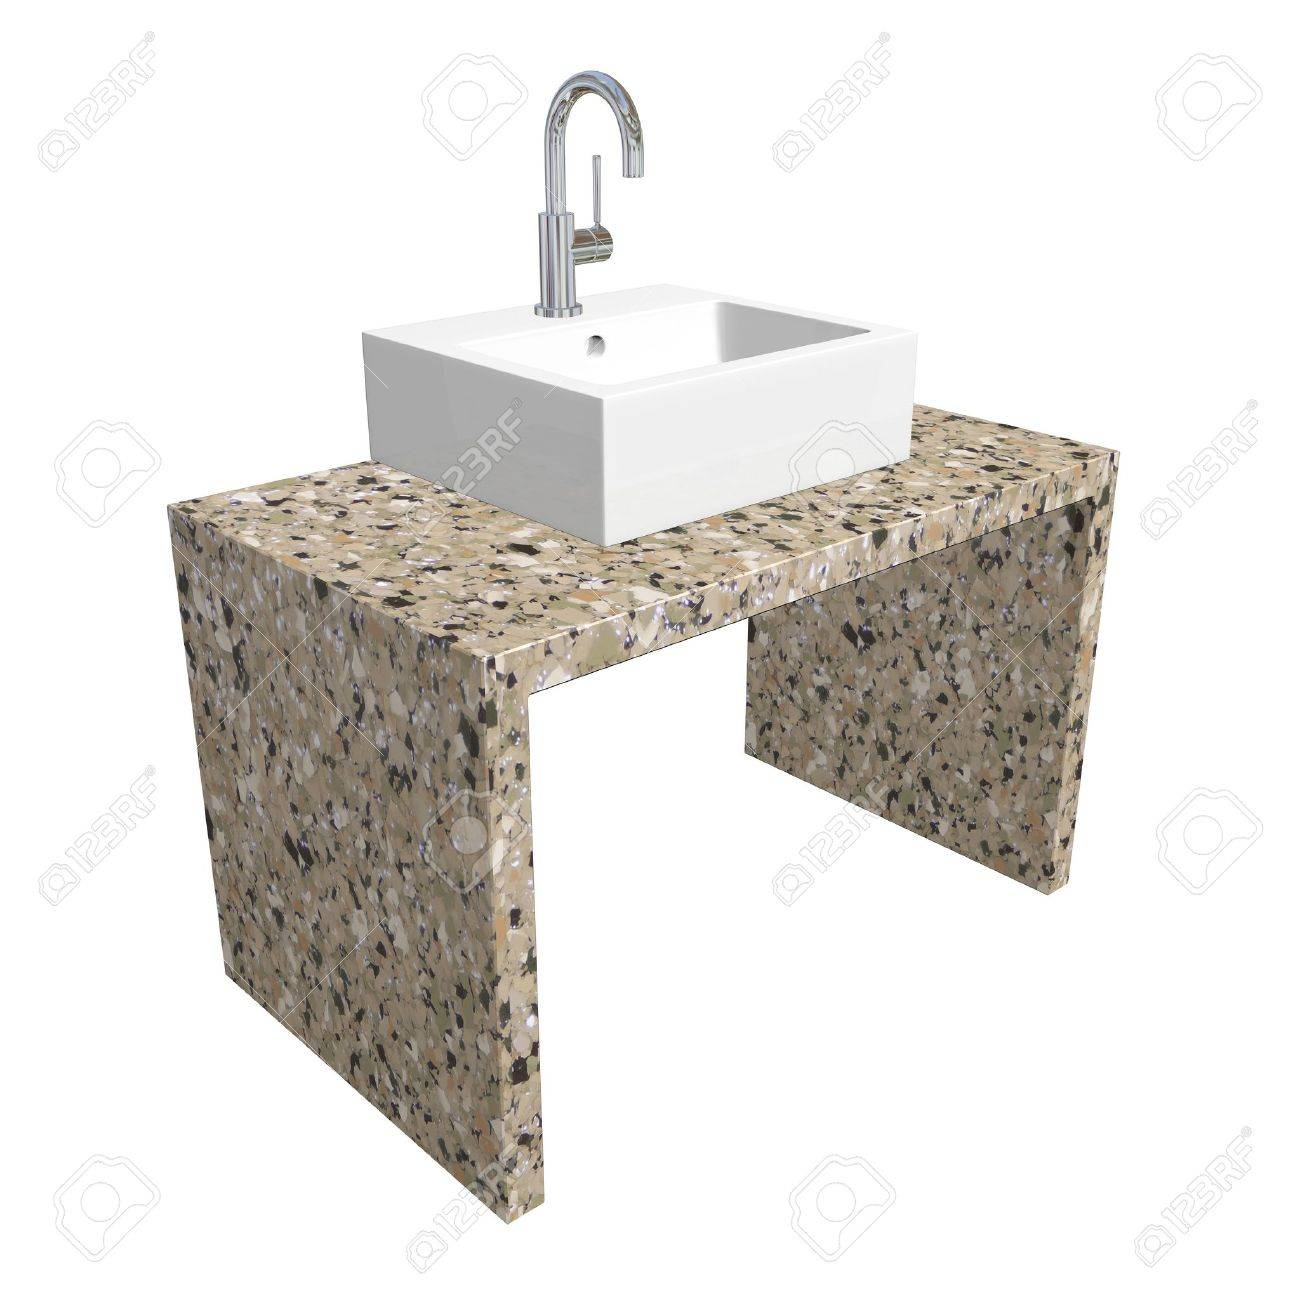 Marble Basin Stock Illustration